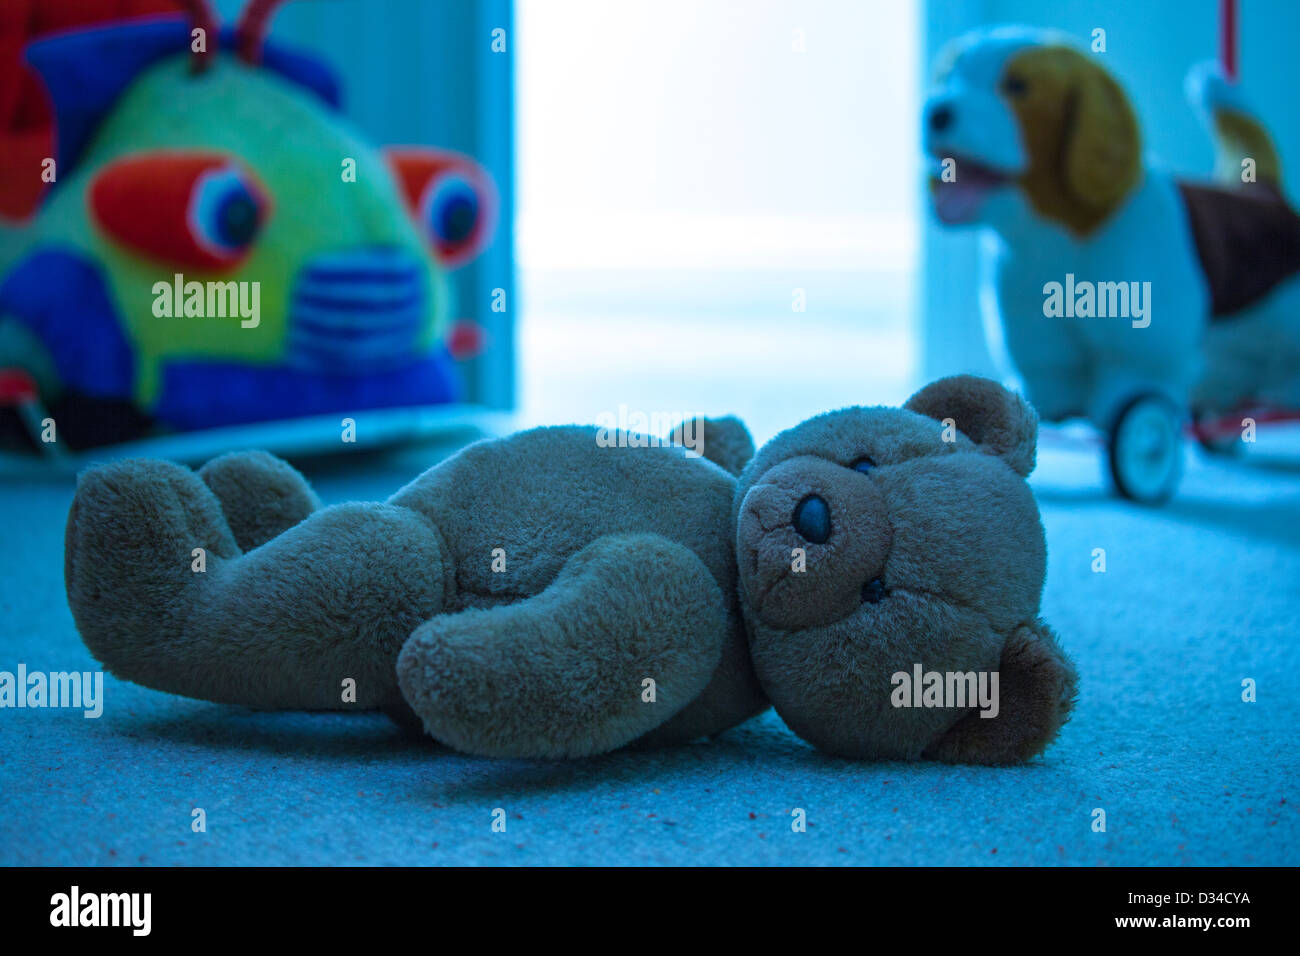 Brown teddy bear laying on a child's bedroom floor. Blue tone. - Stock Image